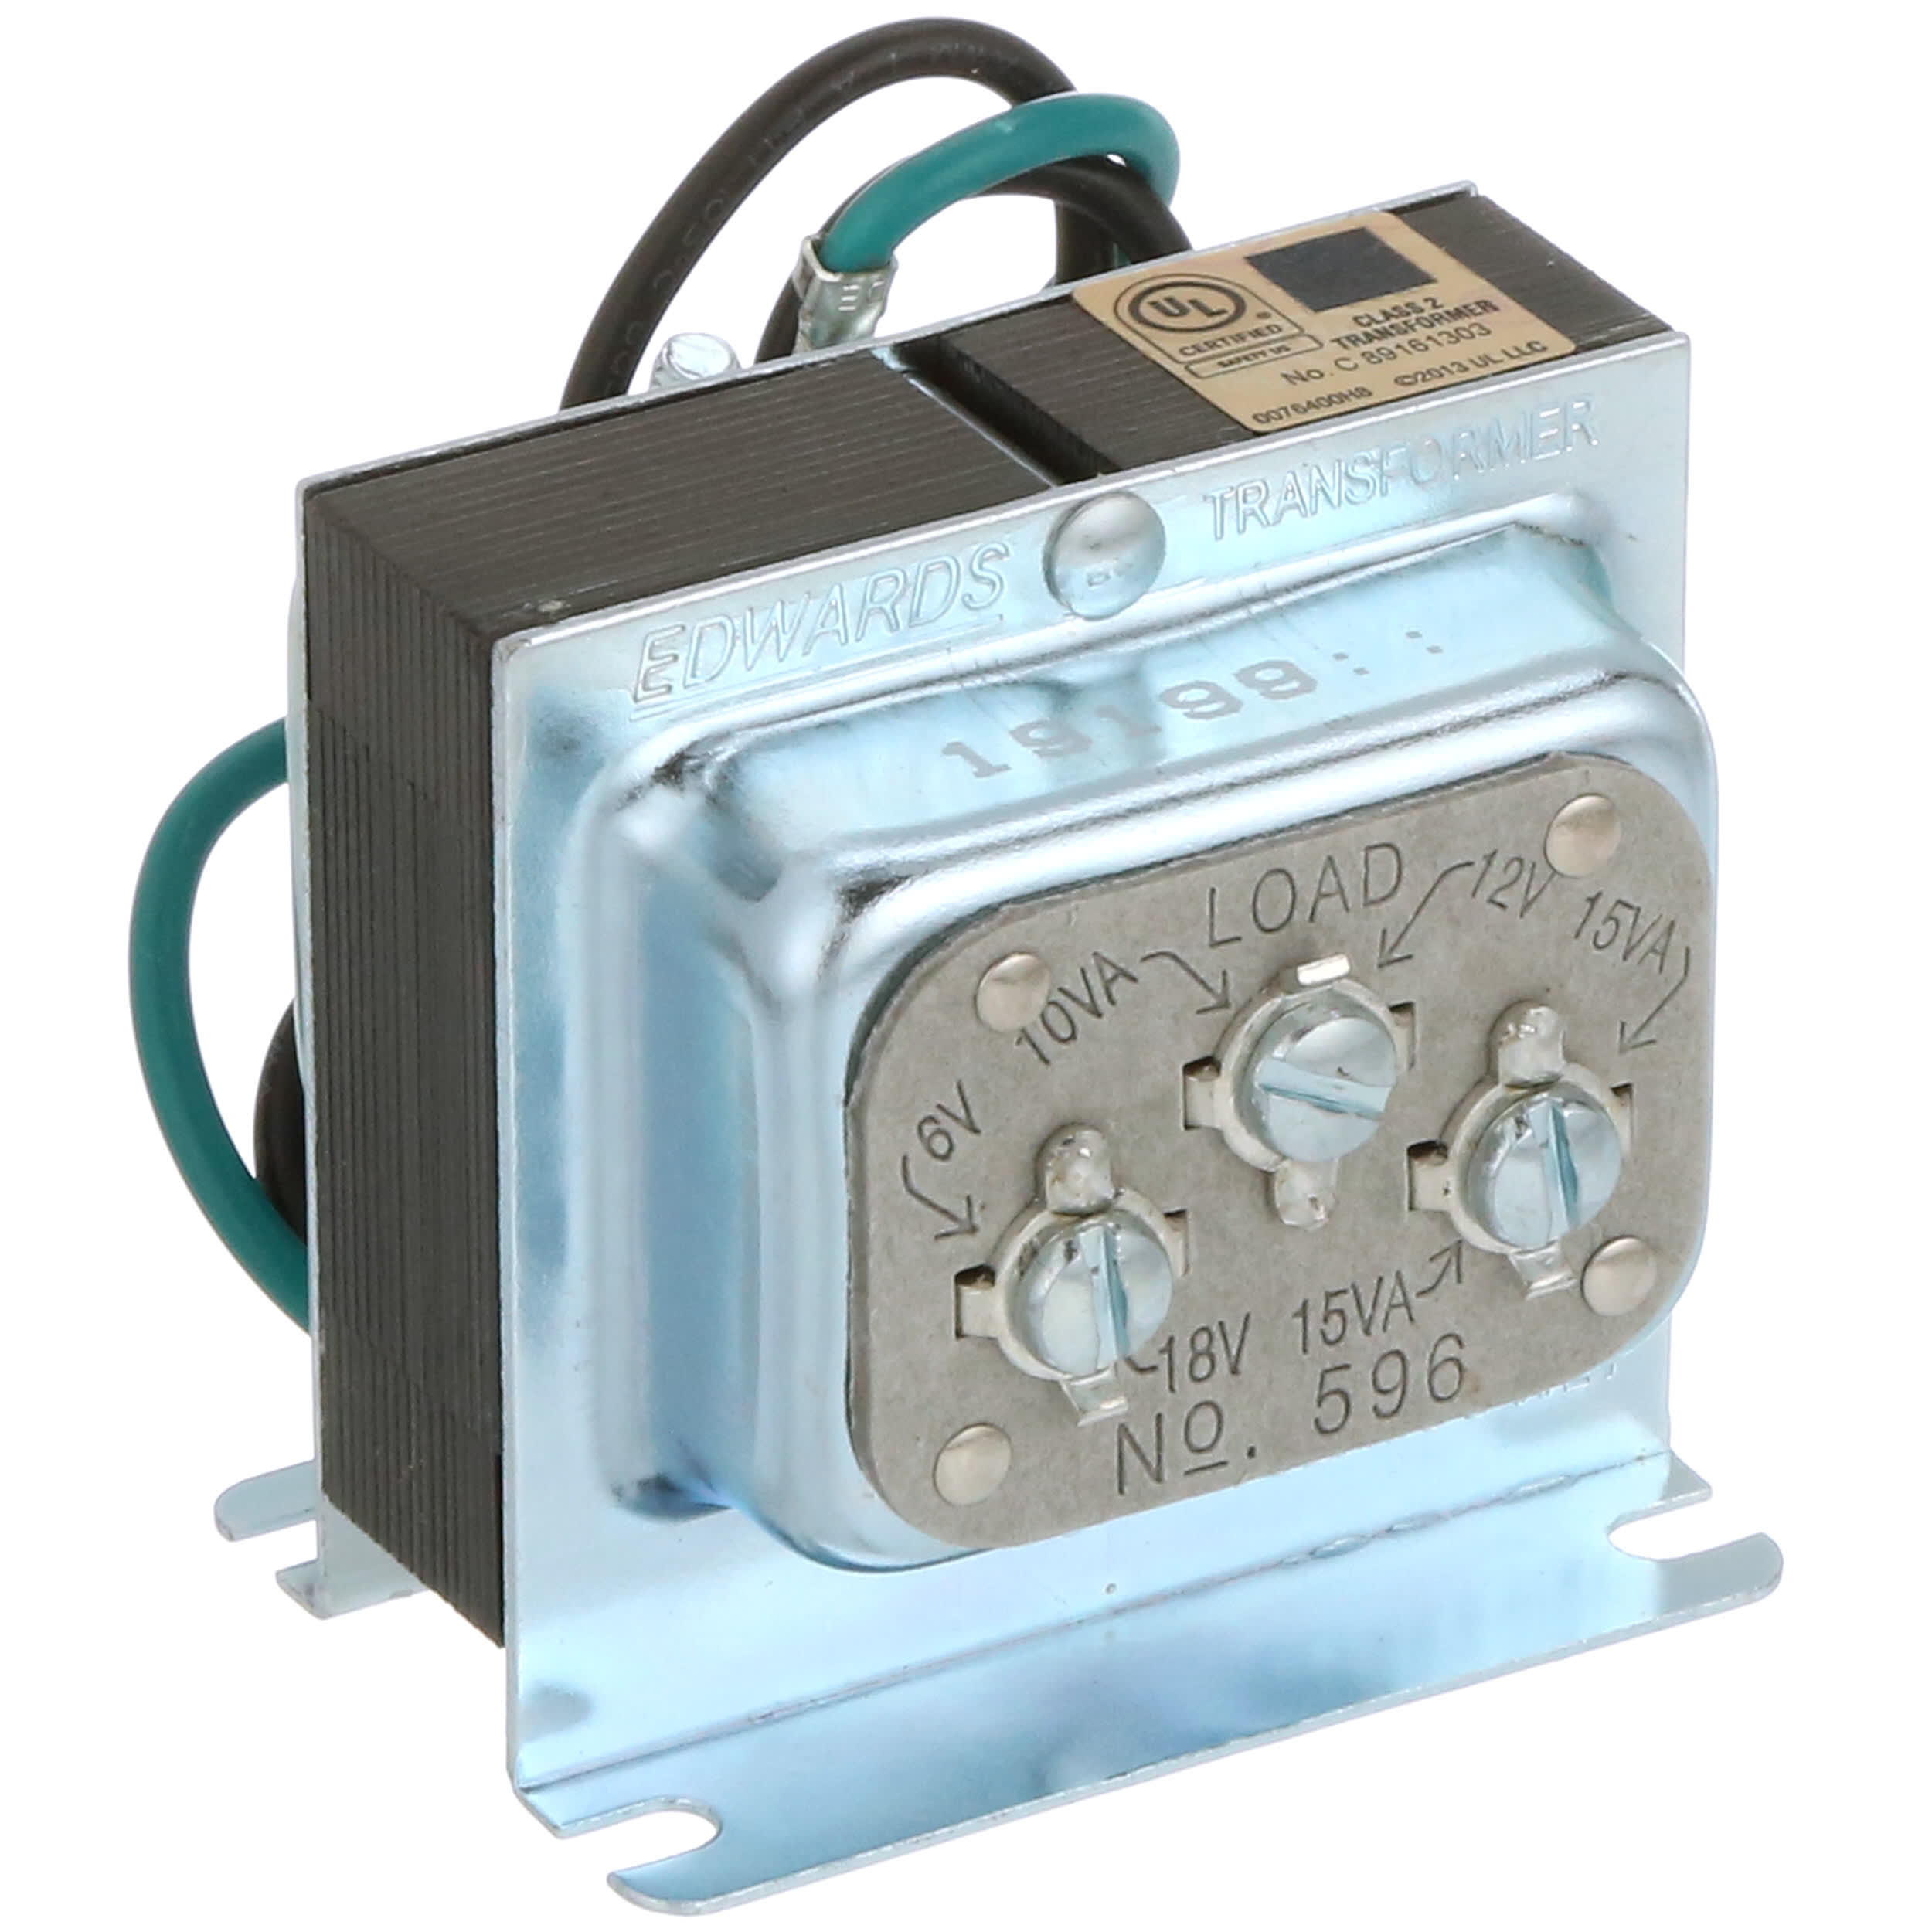 edwards signaling - 596 - transformer, energy limiting, enclosed, 1, freq  50/60hz, pri 120vac, 3 outlets - allied electronics & automation  allied electronics